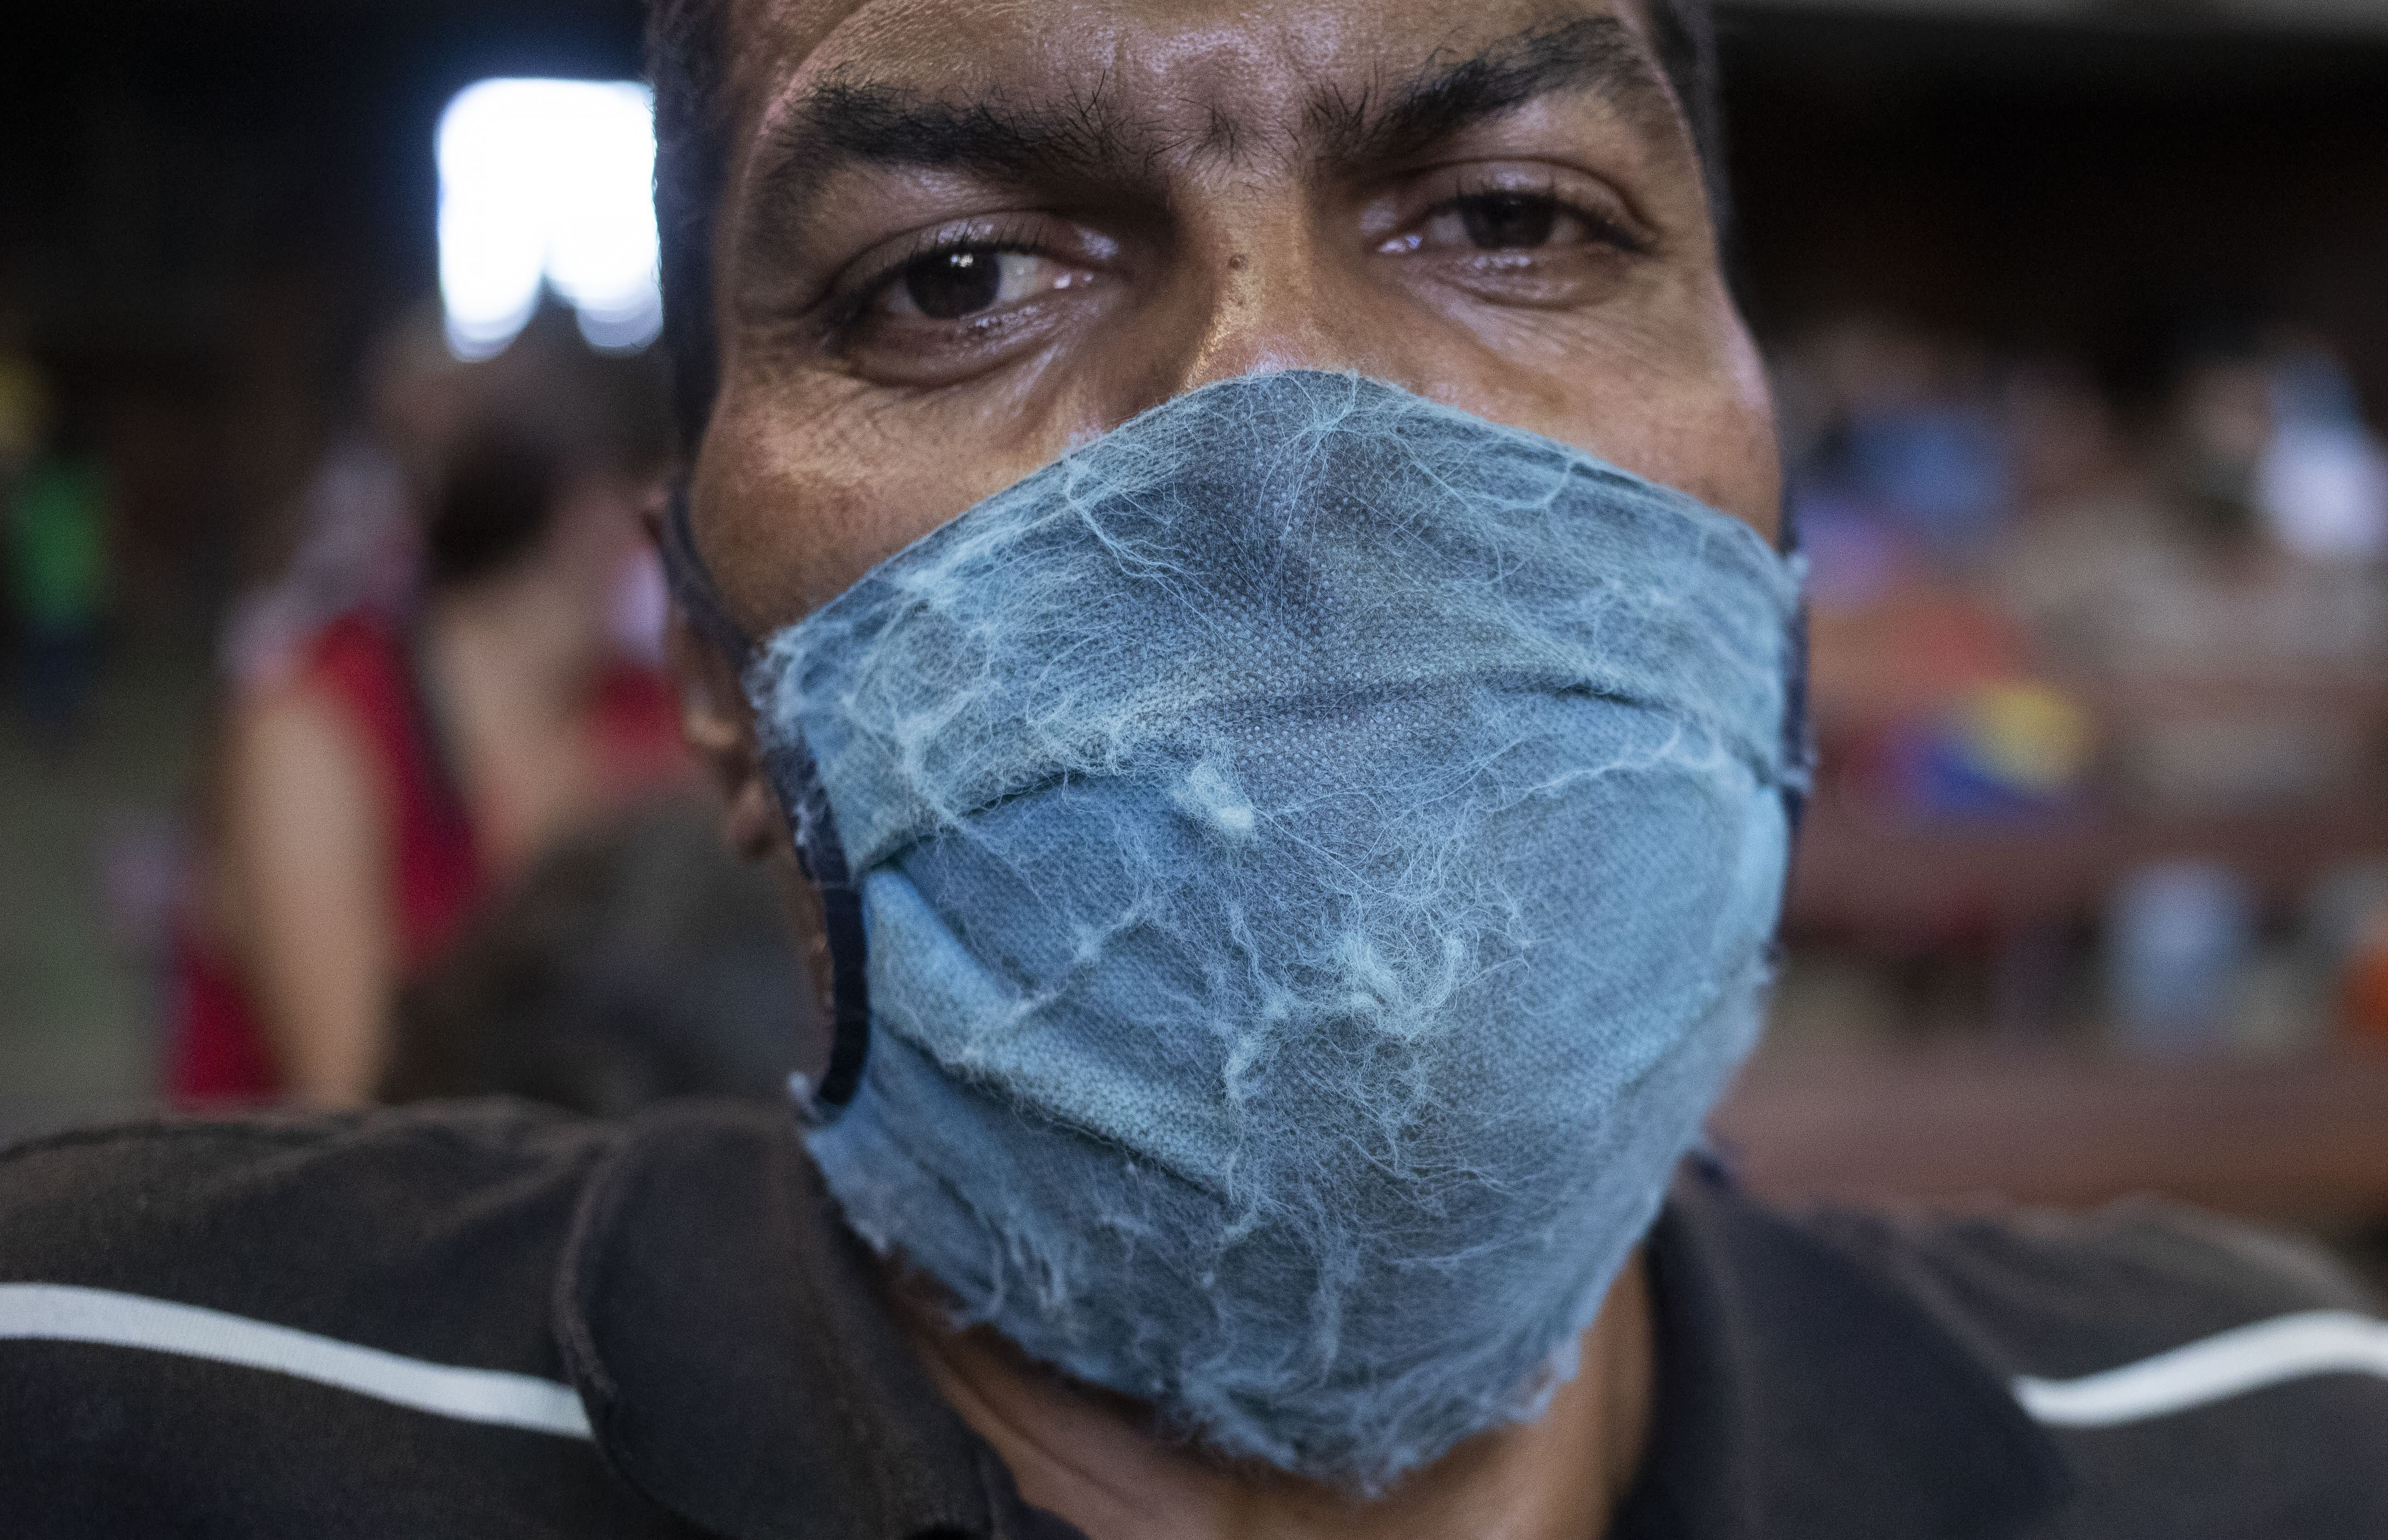 A man, wearing a weathered protective face mask as a precaution against the spread of the new coronavirus, waits to receive a free meal at a church in The Cemetery neighborhood of Caracas, Venezuela, Friday, May 22, 2020. The number of people who come looking for food at the church has increased in quarantine. (AP Photo/Ariana Cubillos)